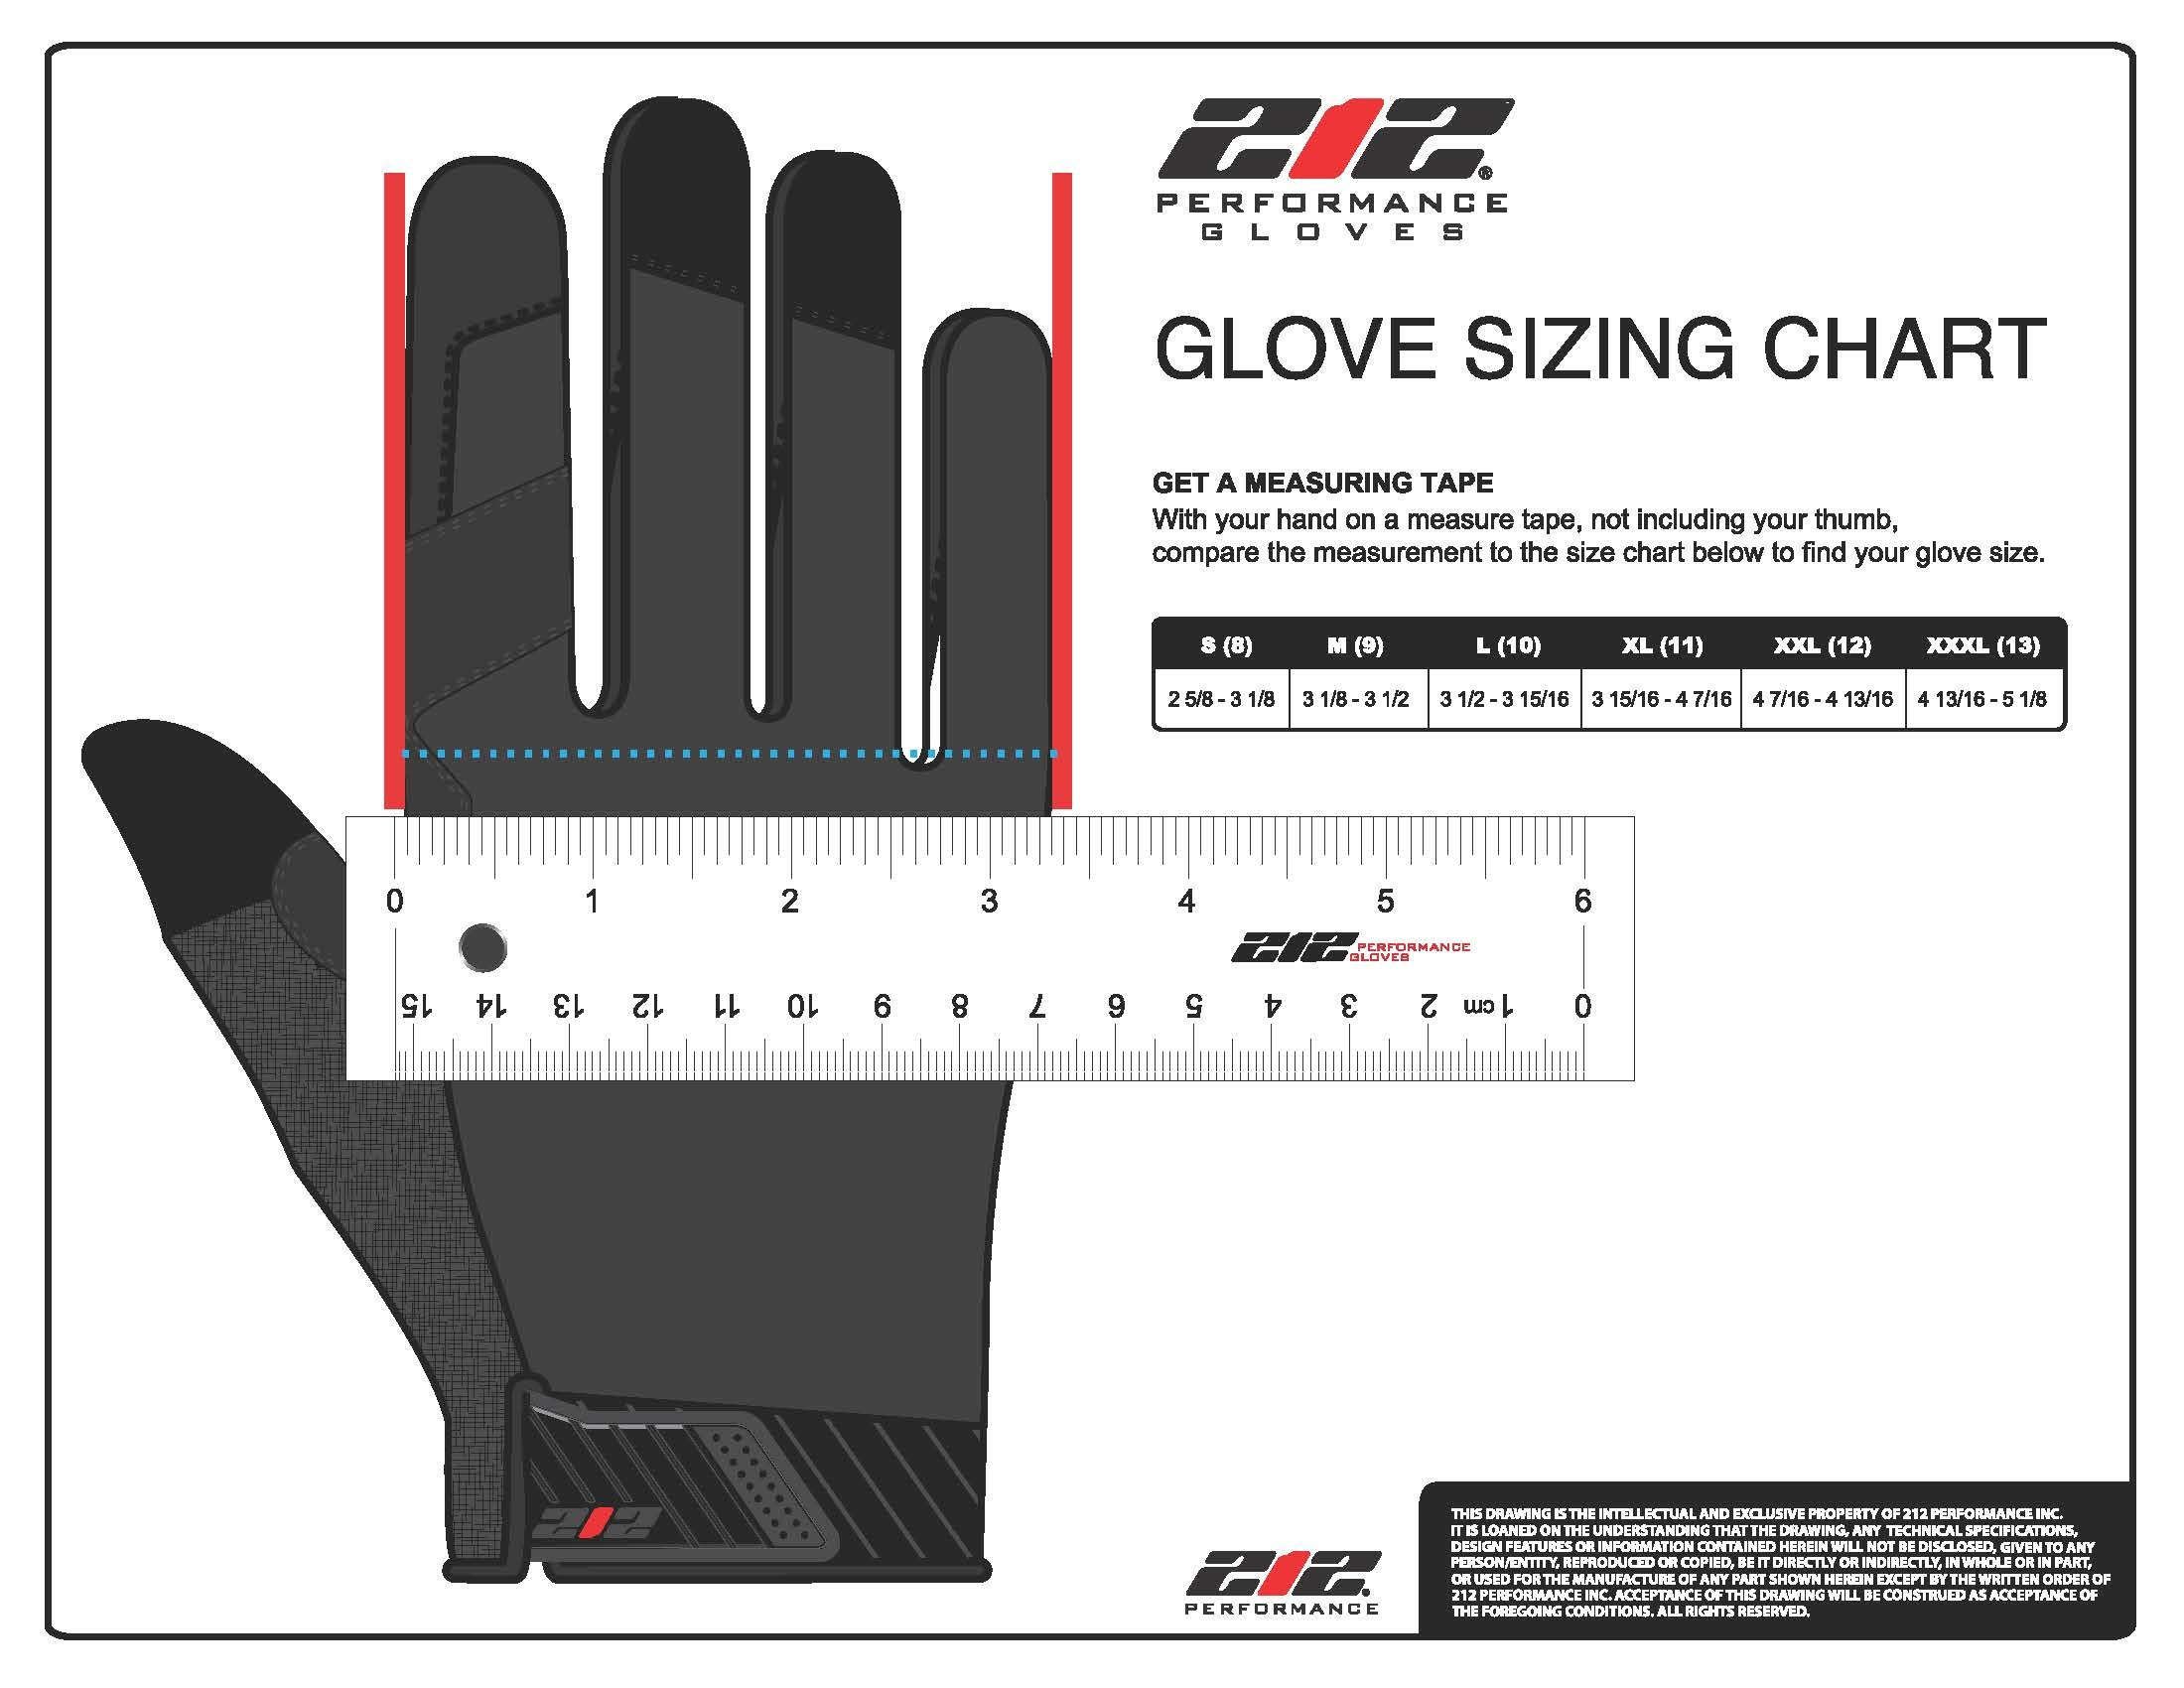 212 Performance Gloves IMPC3AM-70-010 Cut Resistant Impact Air Mesh Gloves (EN Level 3), Large by 212 Performance Gloves (Image #5)